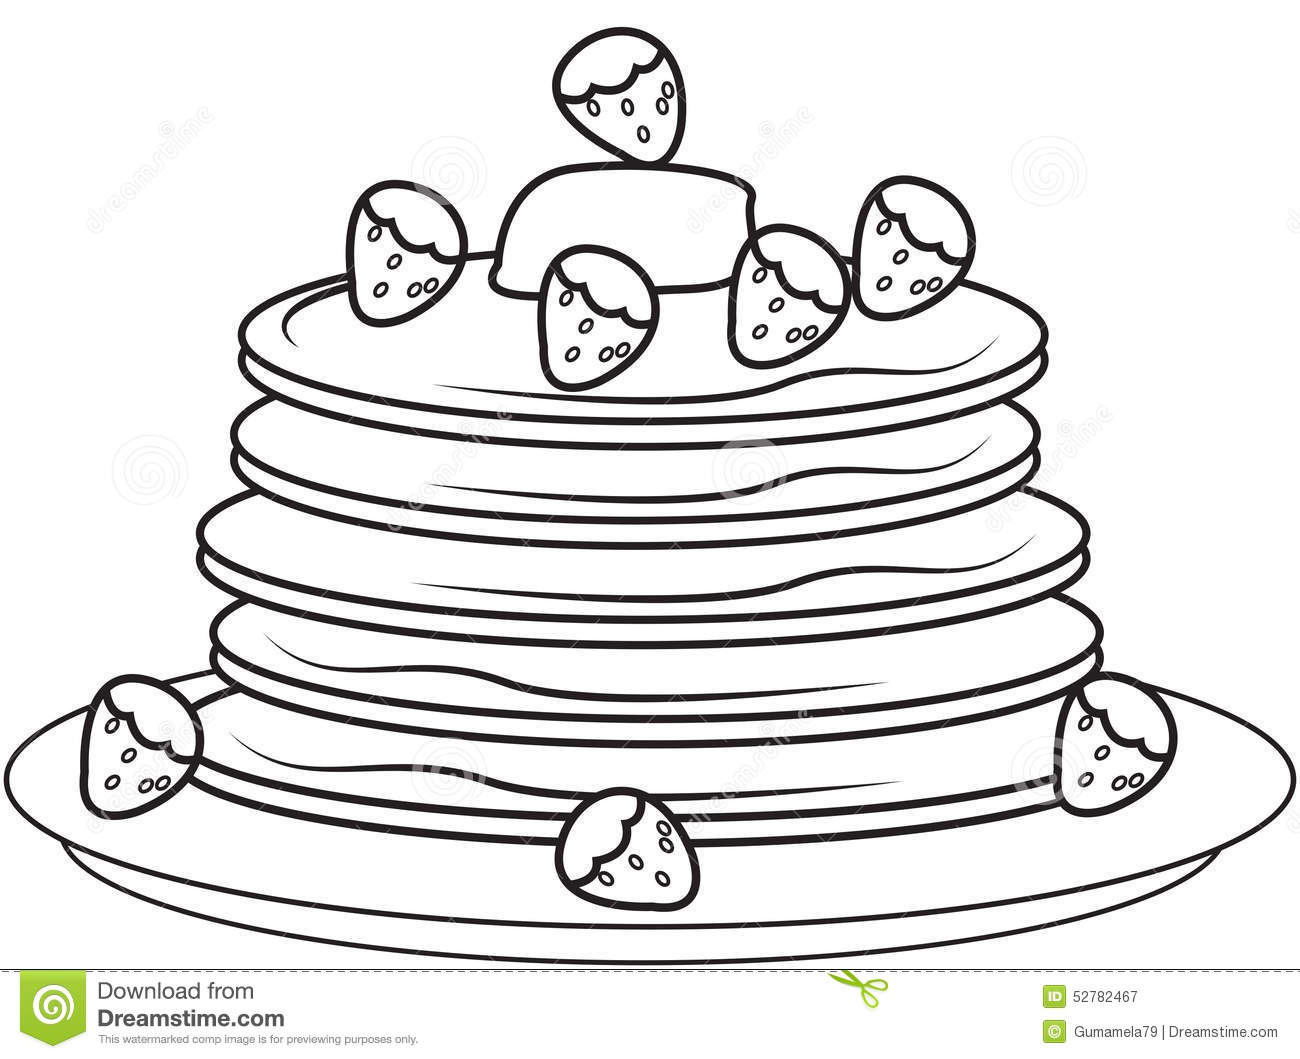 Pancakes coloring page pages sketch coloring page for If you give a pig a pancake coloring pages